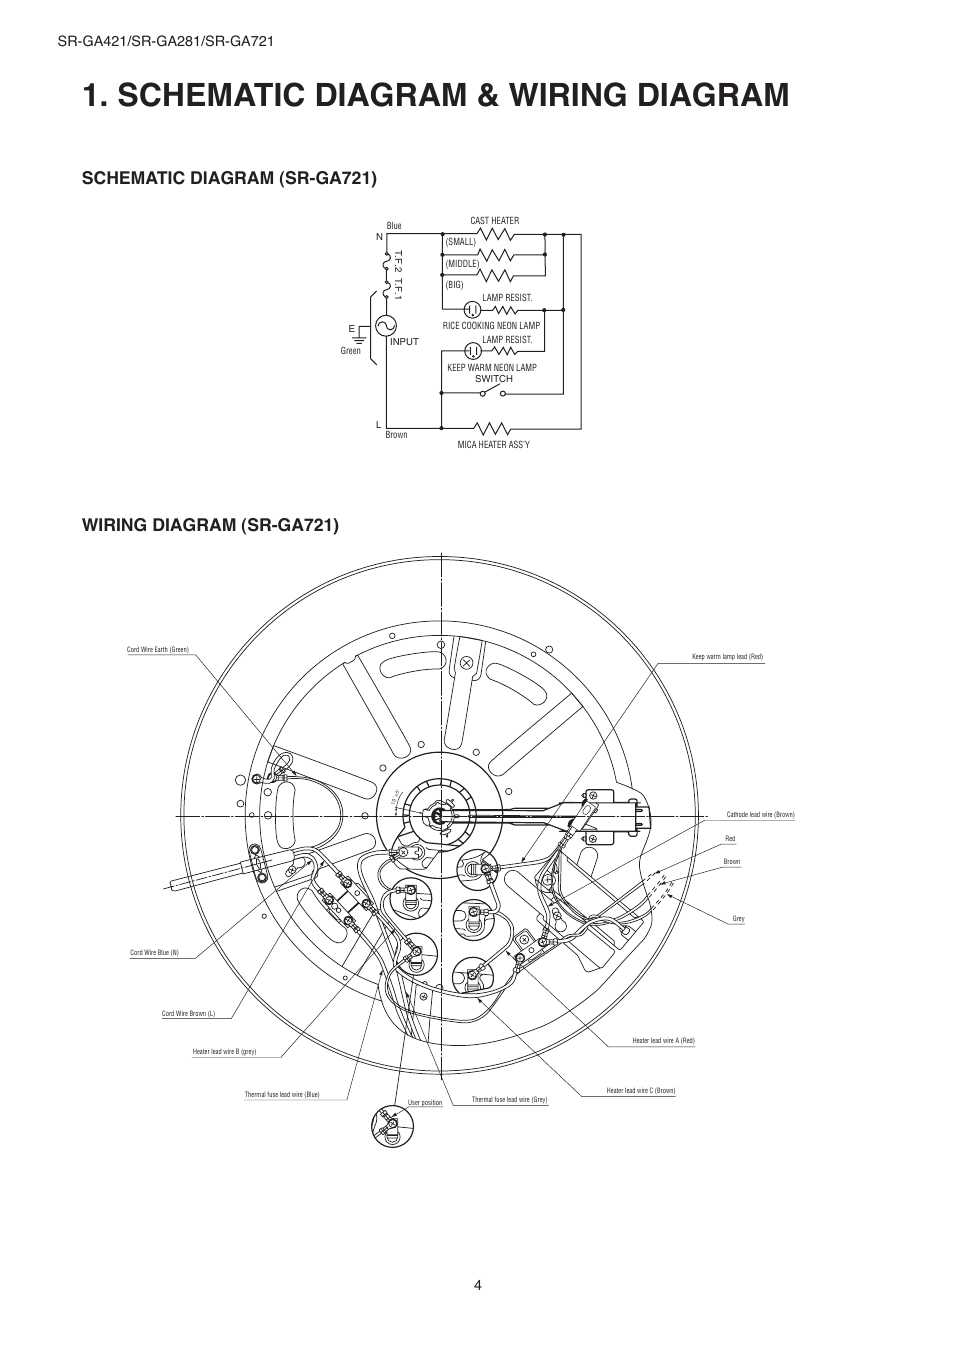 hight resolution of schematic diagram wiring diagram panasonic sr ga721 user manual page 4 18